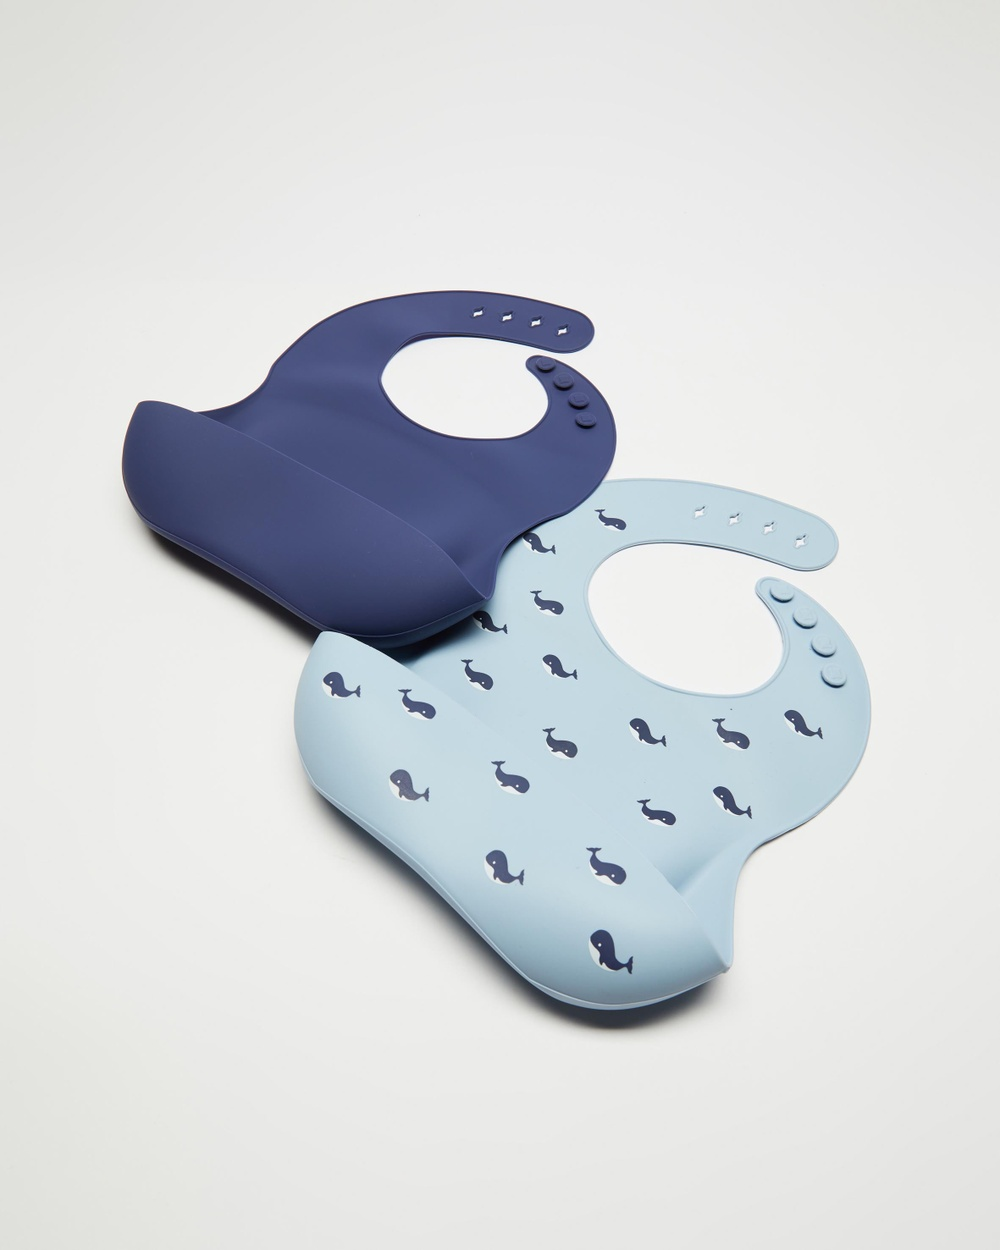 Bebe by Minihaha 2 Pack Silicone Bibs Babies Whale Print & Navy